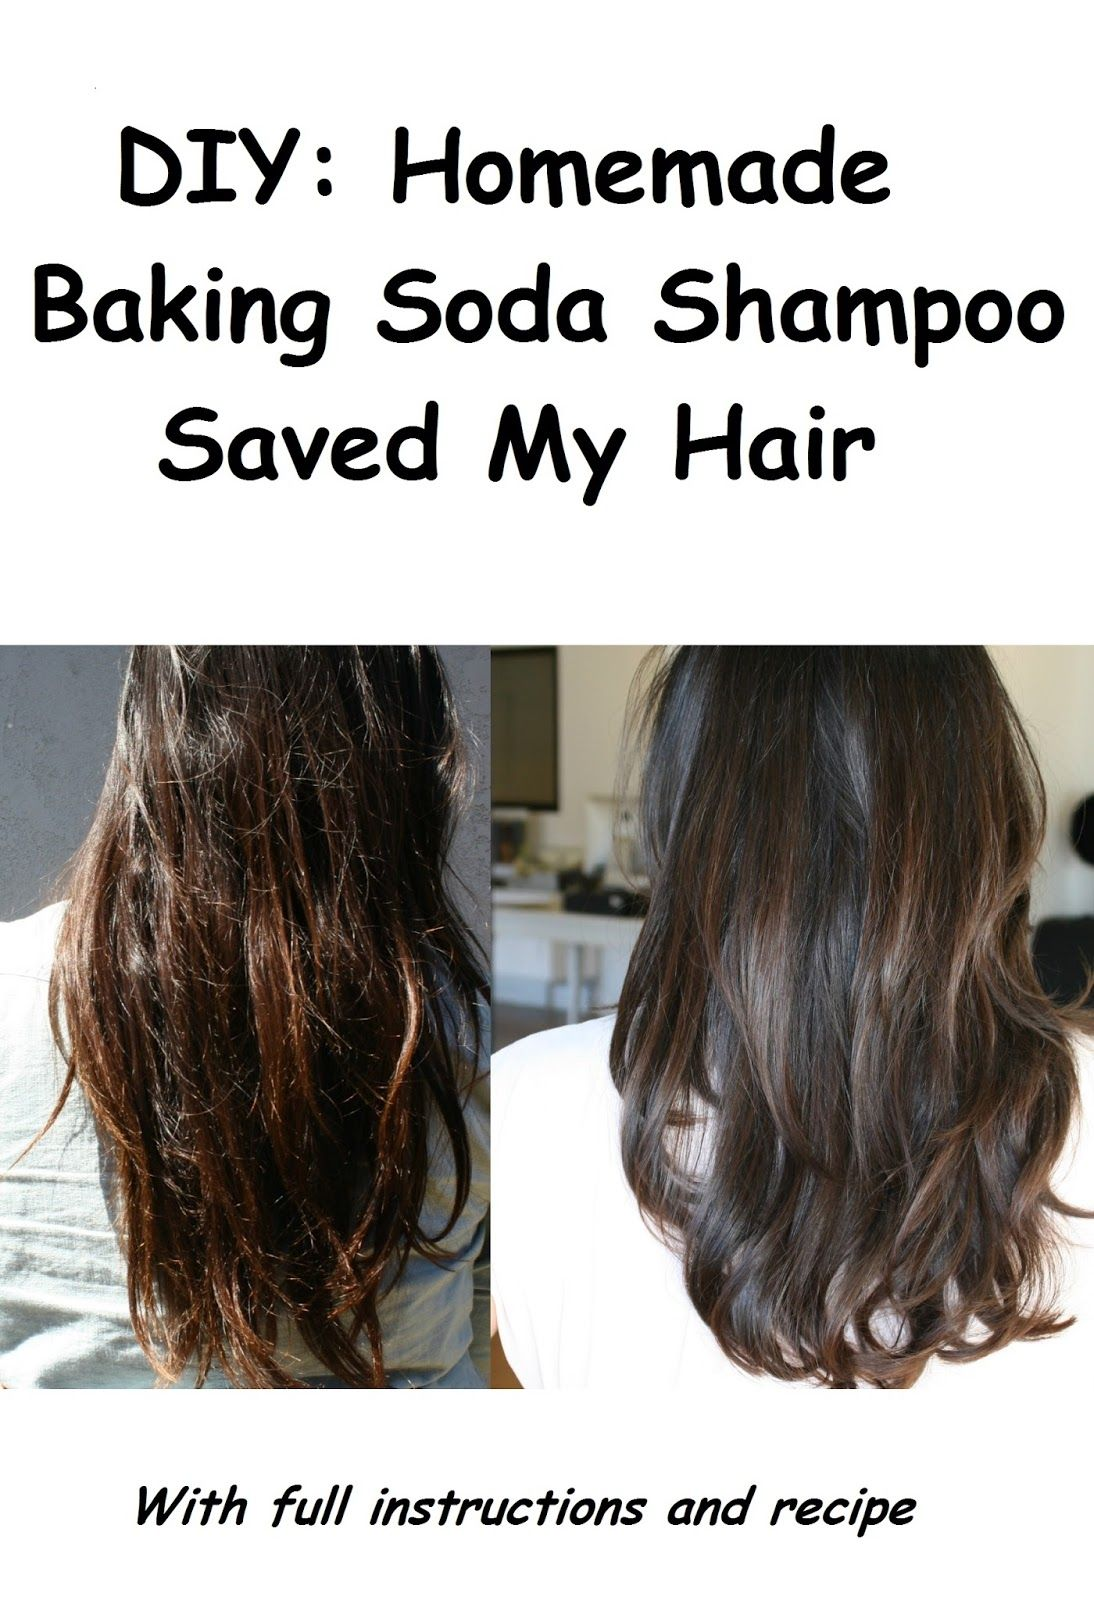 Diy Homemade Baking Soda Shampoo Saved My Hair Baking Soda For Hair Baking Soda Shampoo Hair Shampoo